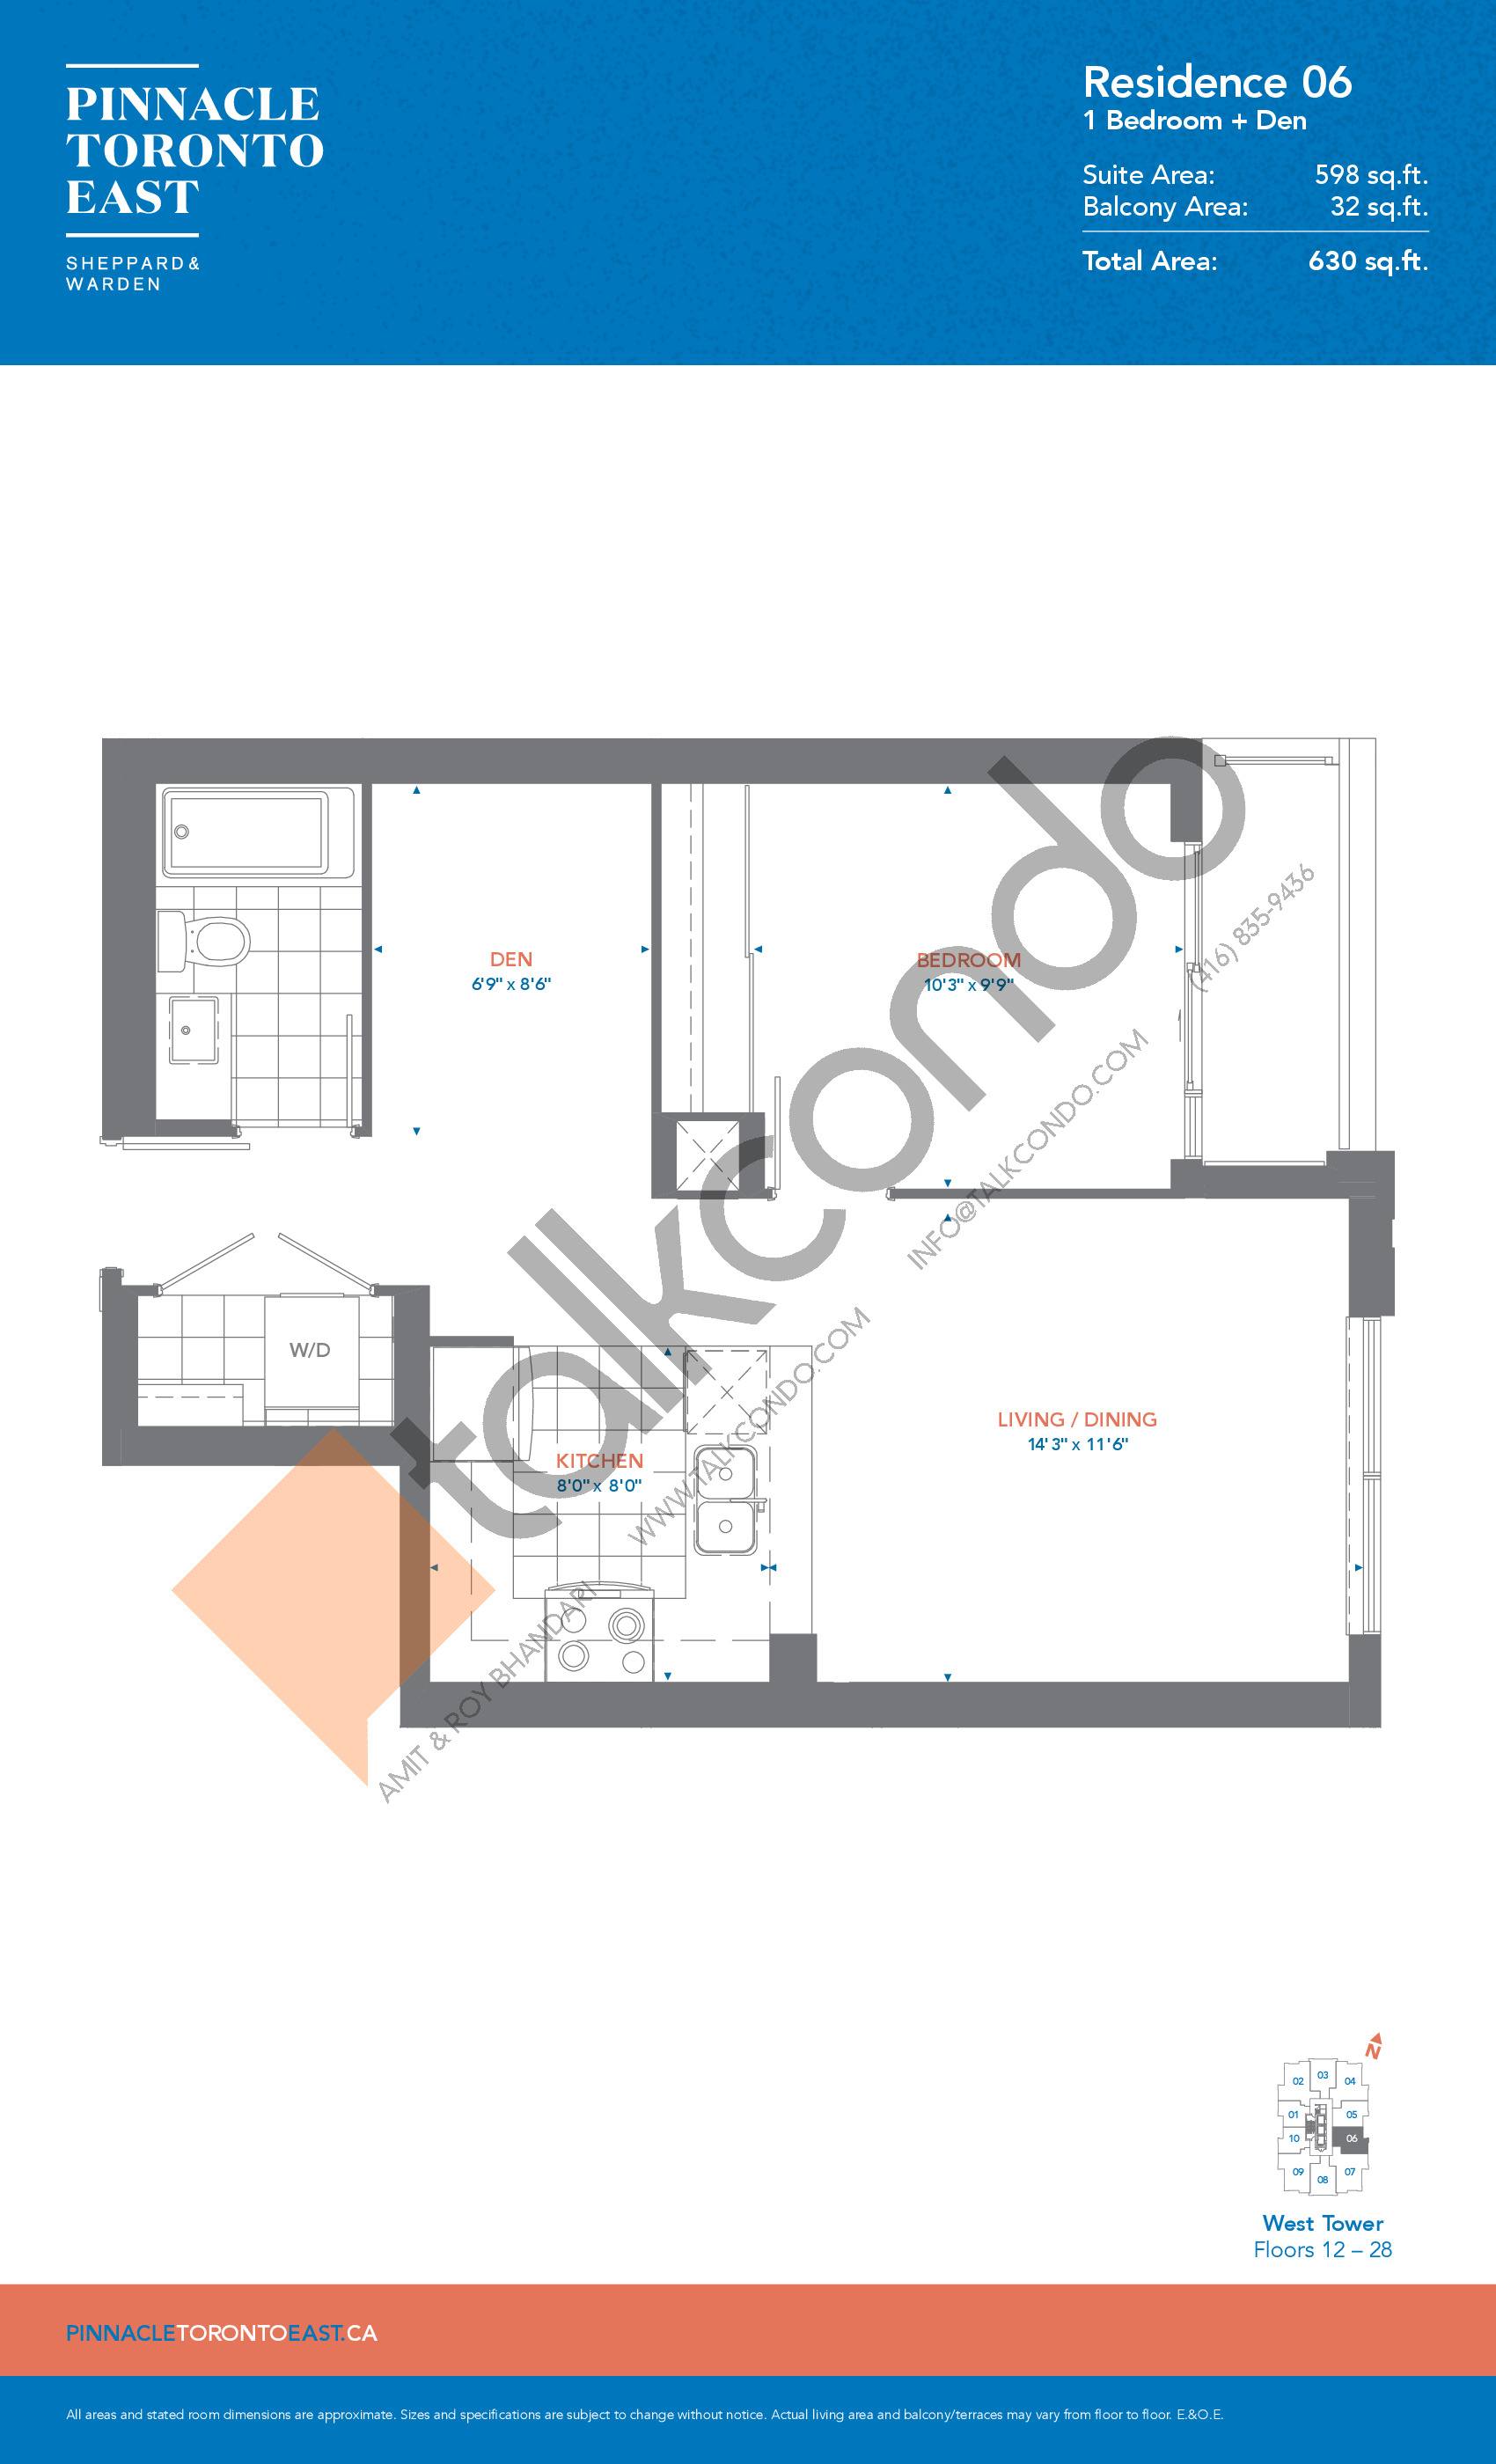 Residence 06 - West Tower Floor Plan at Pinnacle Toronto East Condos - 598 sq.ft